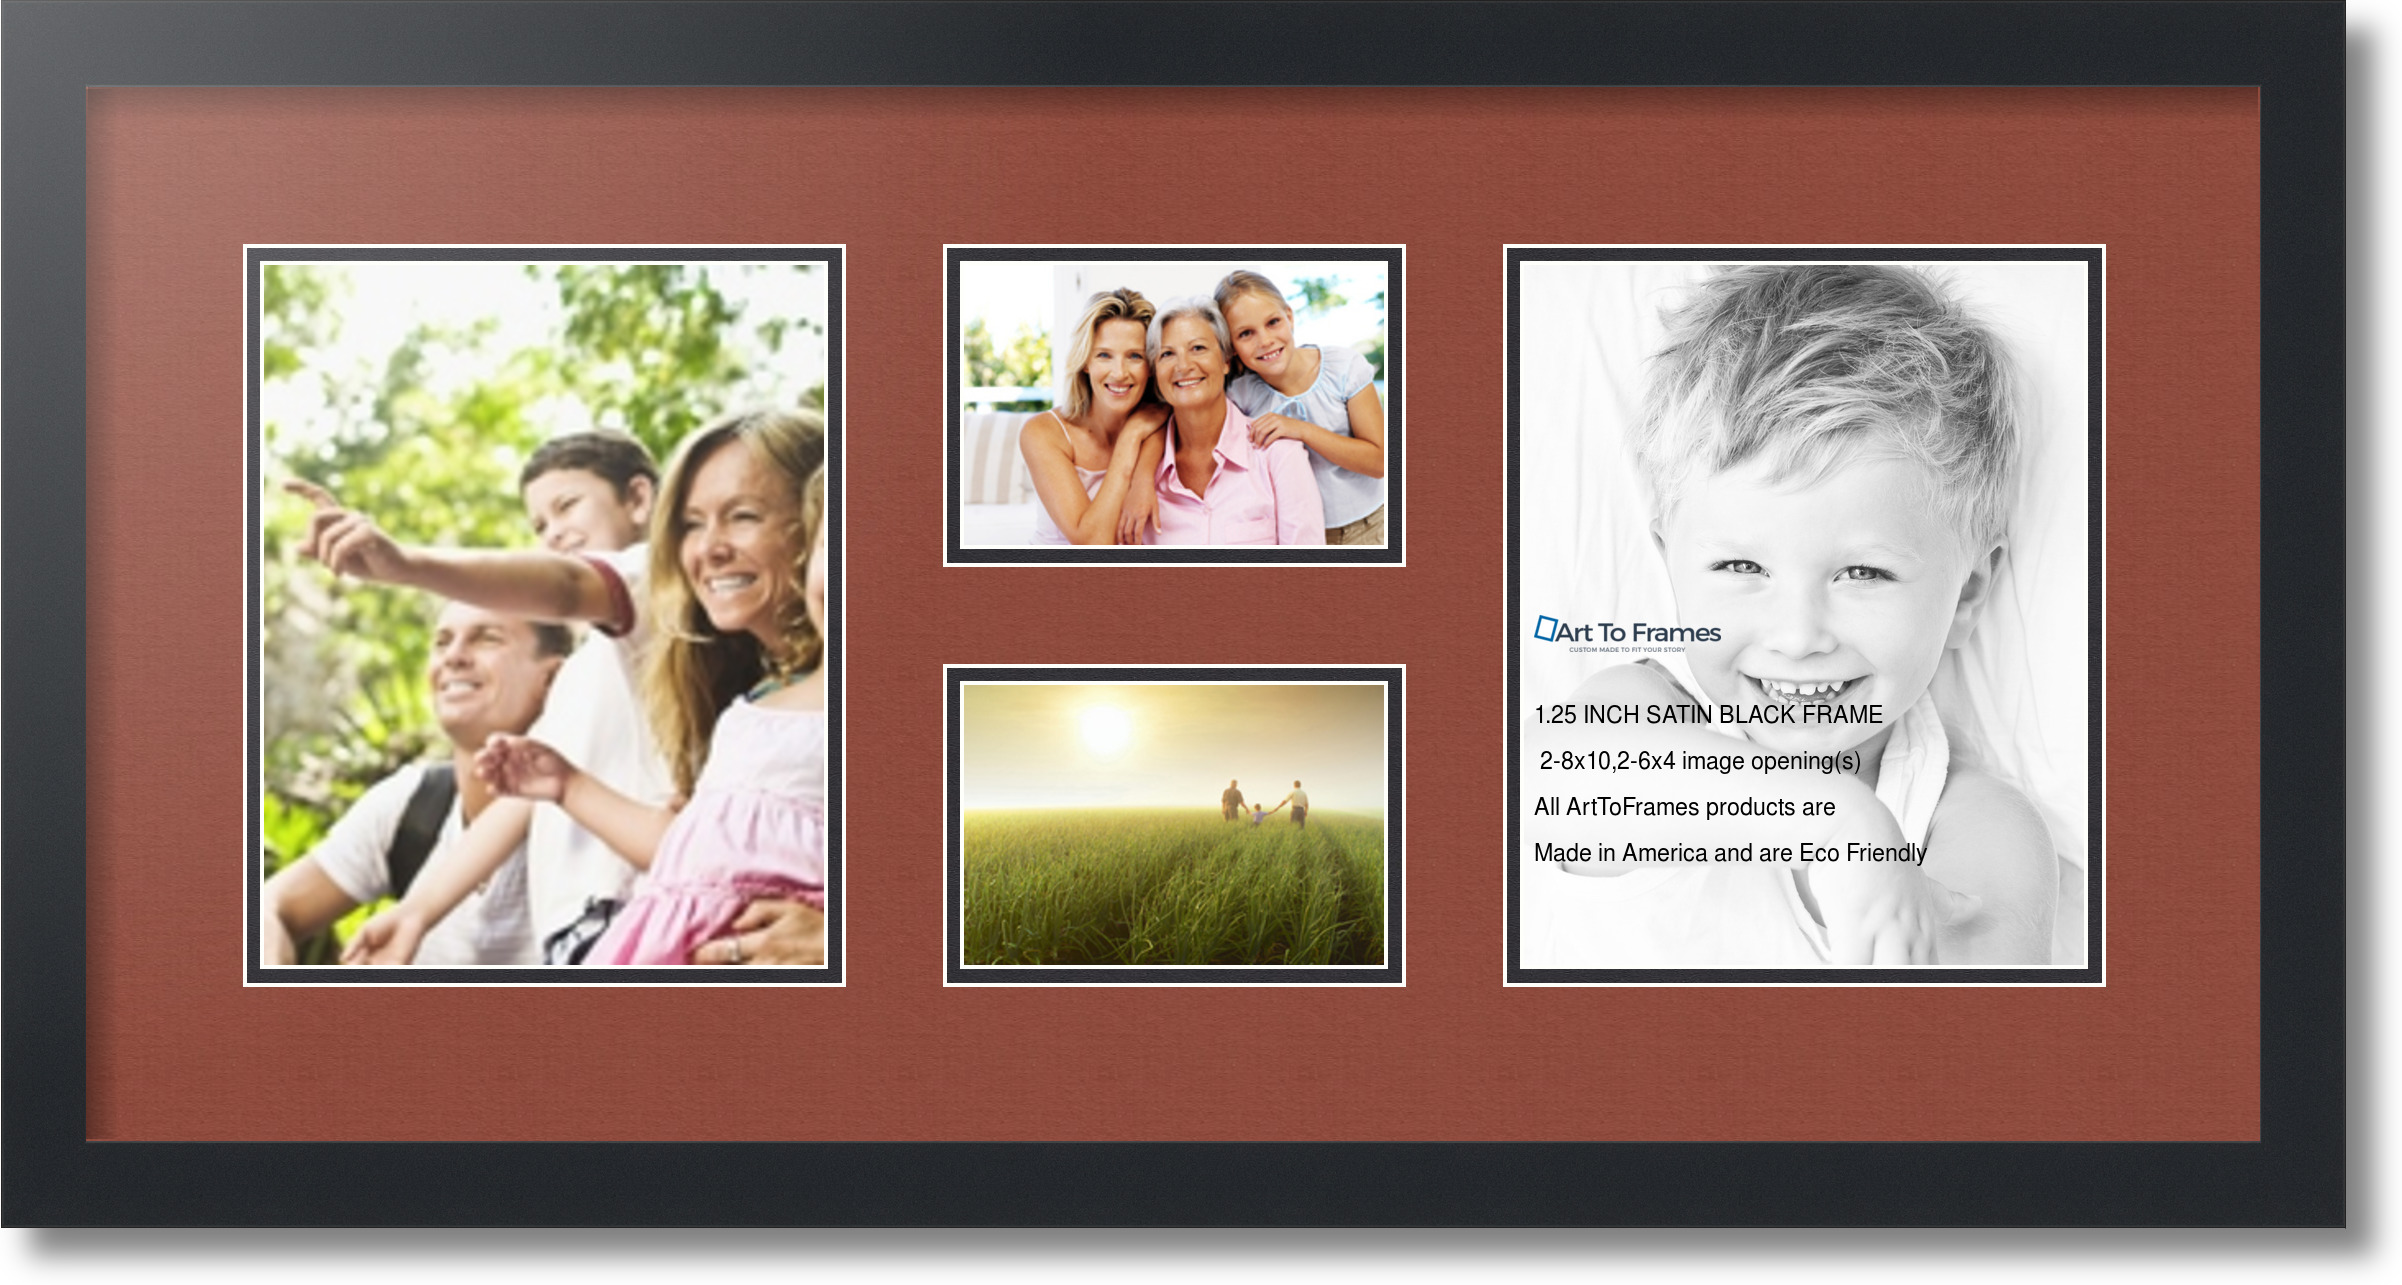 Satin Black Collage Picture Frame With 2 4x6 8x10